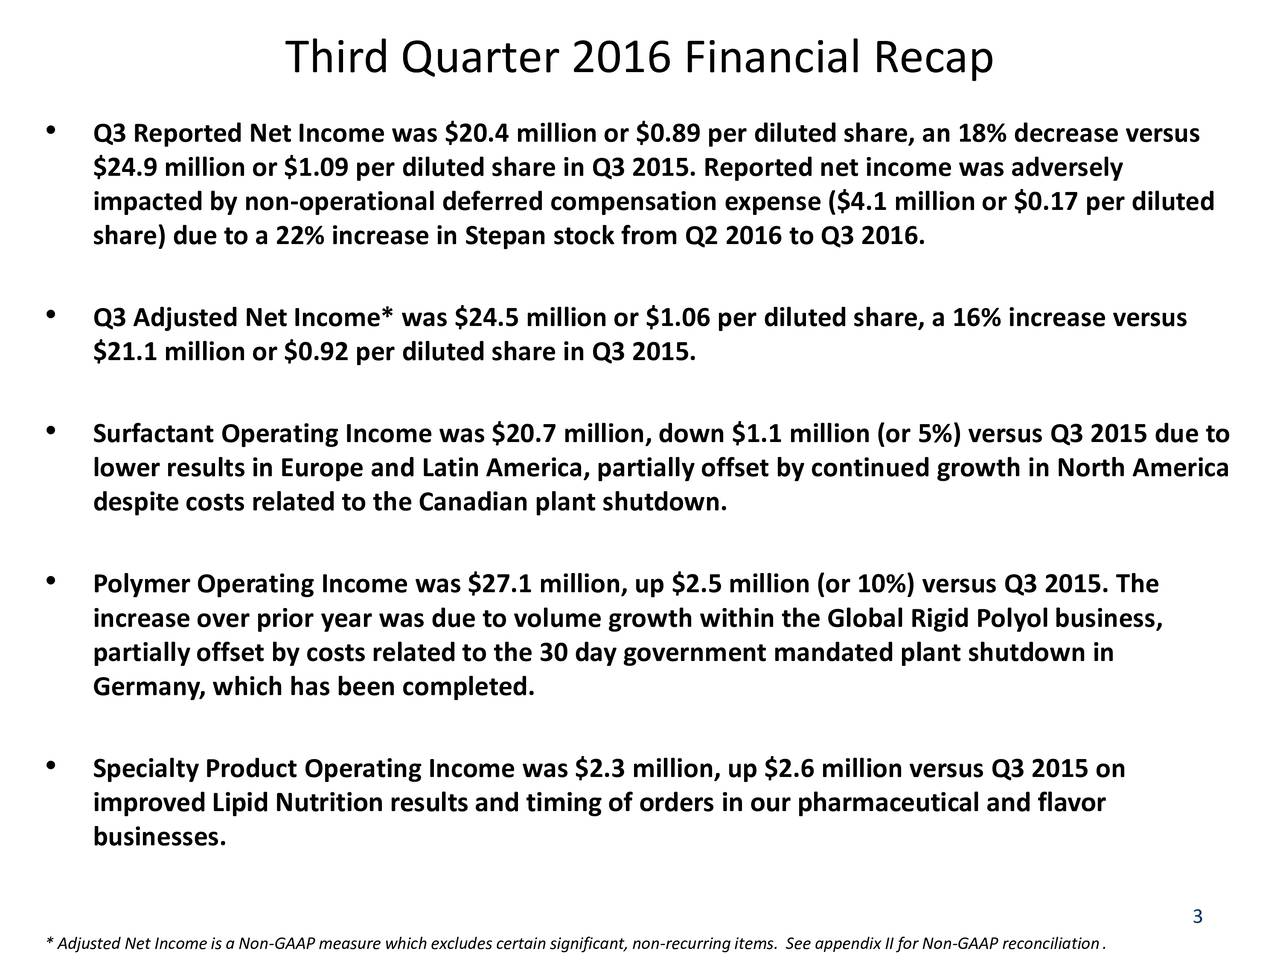 Q3 Reported Net Income was $20.4 million or $0.89 per diluted share, an 18% decrease versus $24.9 million or $1.09 per diluted share in Q3 2015. Reported net income was adversely impacted by non-operational deferred compensation expense ($4.1 million or $0.17 per diluted share) due to a 22% increase in Stepan stock from Q2 2016 to Q3 2016. Q3 Adjusted Net Income* was $24.5 million or $1.06 per diluted share, a 16% increase versus $21.1 million or $0.92 per diluted share in Q3 2015. Surfactant Operating Income was $20.7 million, down $1.1 million (or 5%) versus Q3 2015 due to lower results in Europe and Latin America, partially offset by continued growth in North America despite costs related to the Canadian plant shutdown. Polymer Operating Income was $27.1 million, up $2.5 million (or 10%) versus Q3 2015. The increase over prior year was due to volume growth within the Global Rigid Polyol business, partially offset by costs related to the 30 day government mandated plant shutdown in Germany, which has been completed. Specialty Product Operating Income was $2.3 million, up $2.6 million versus Q3 2015 on improved Lipid Nutrition results and timing of orders in our pharmaceutical and flavor businesses. 3